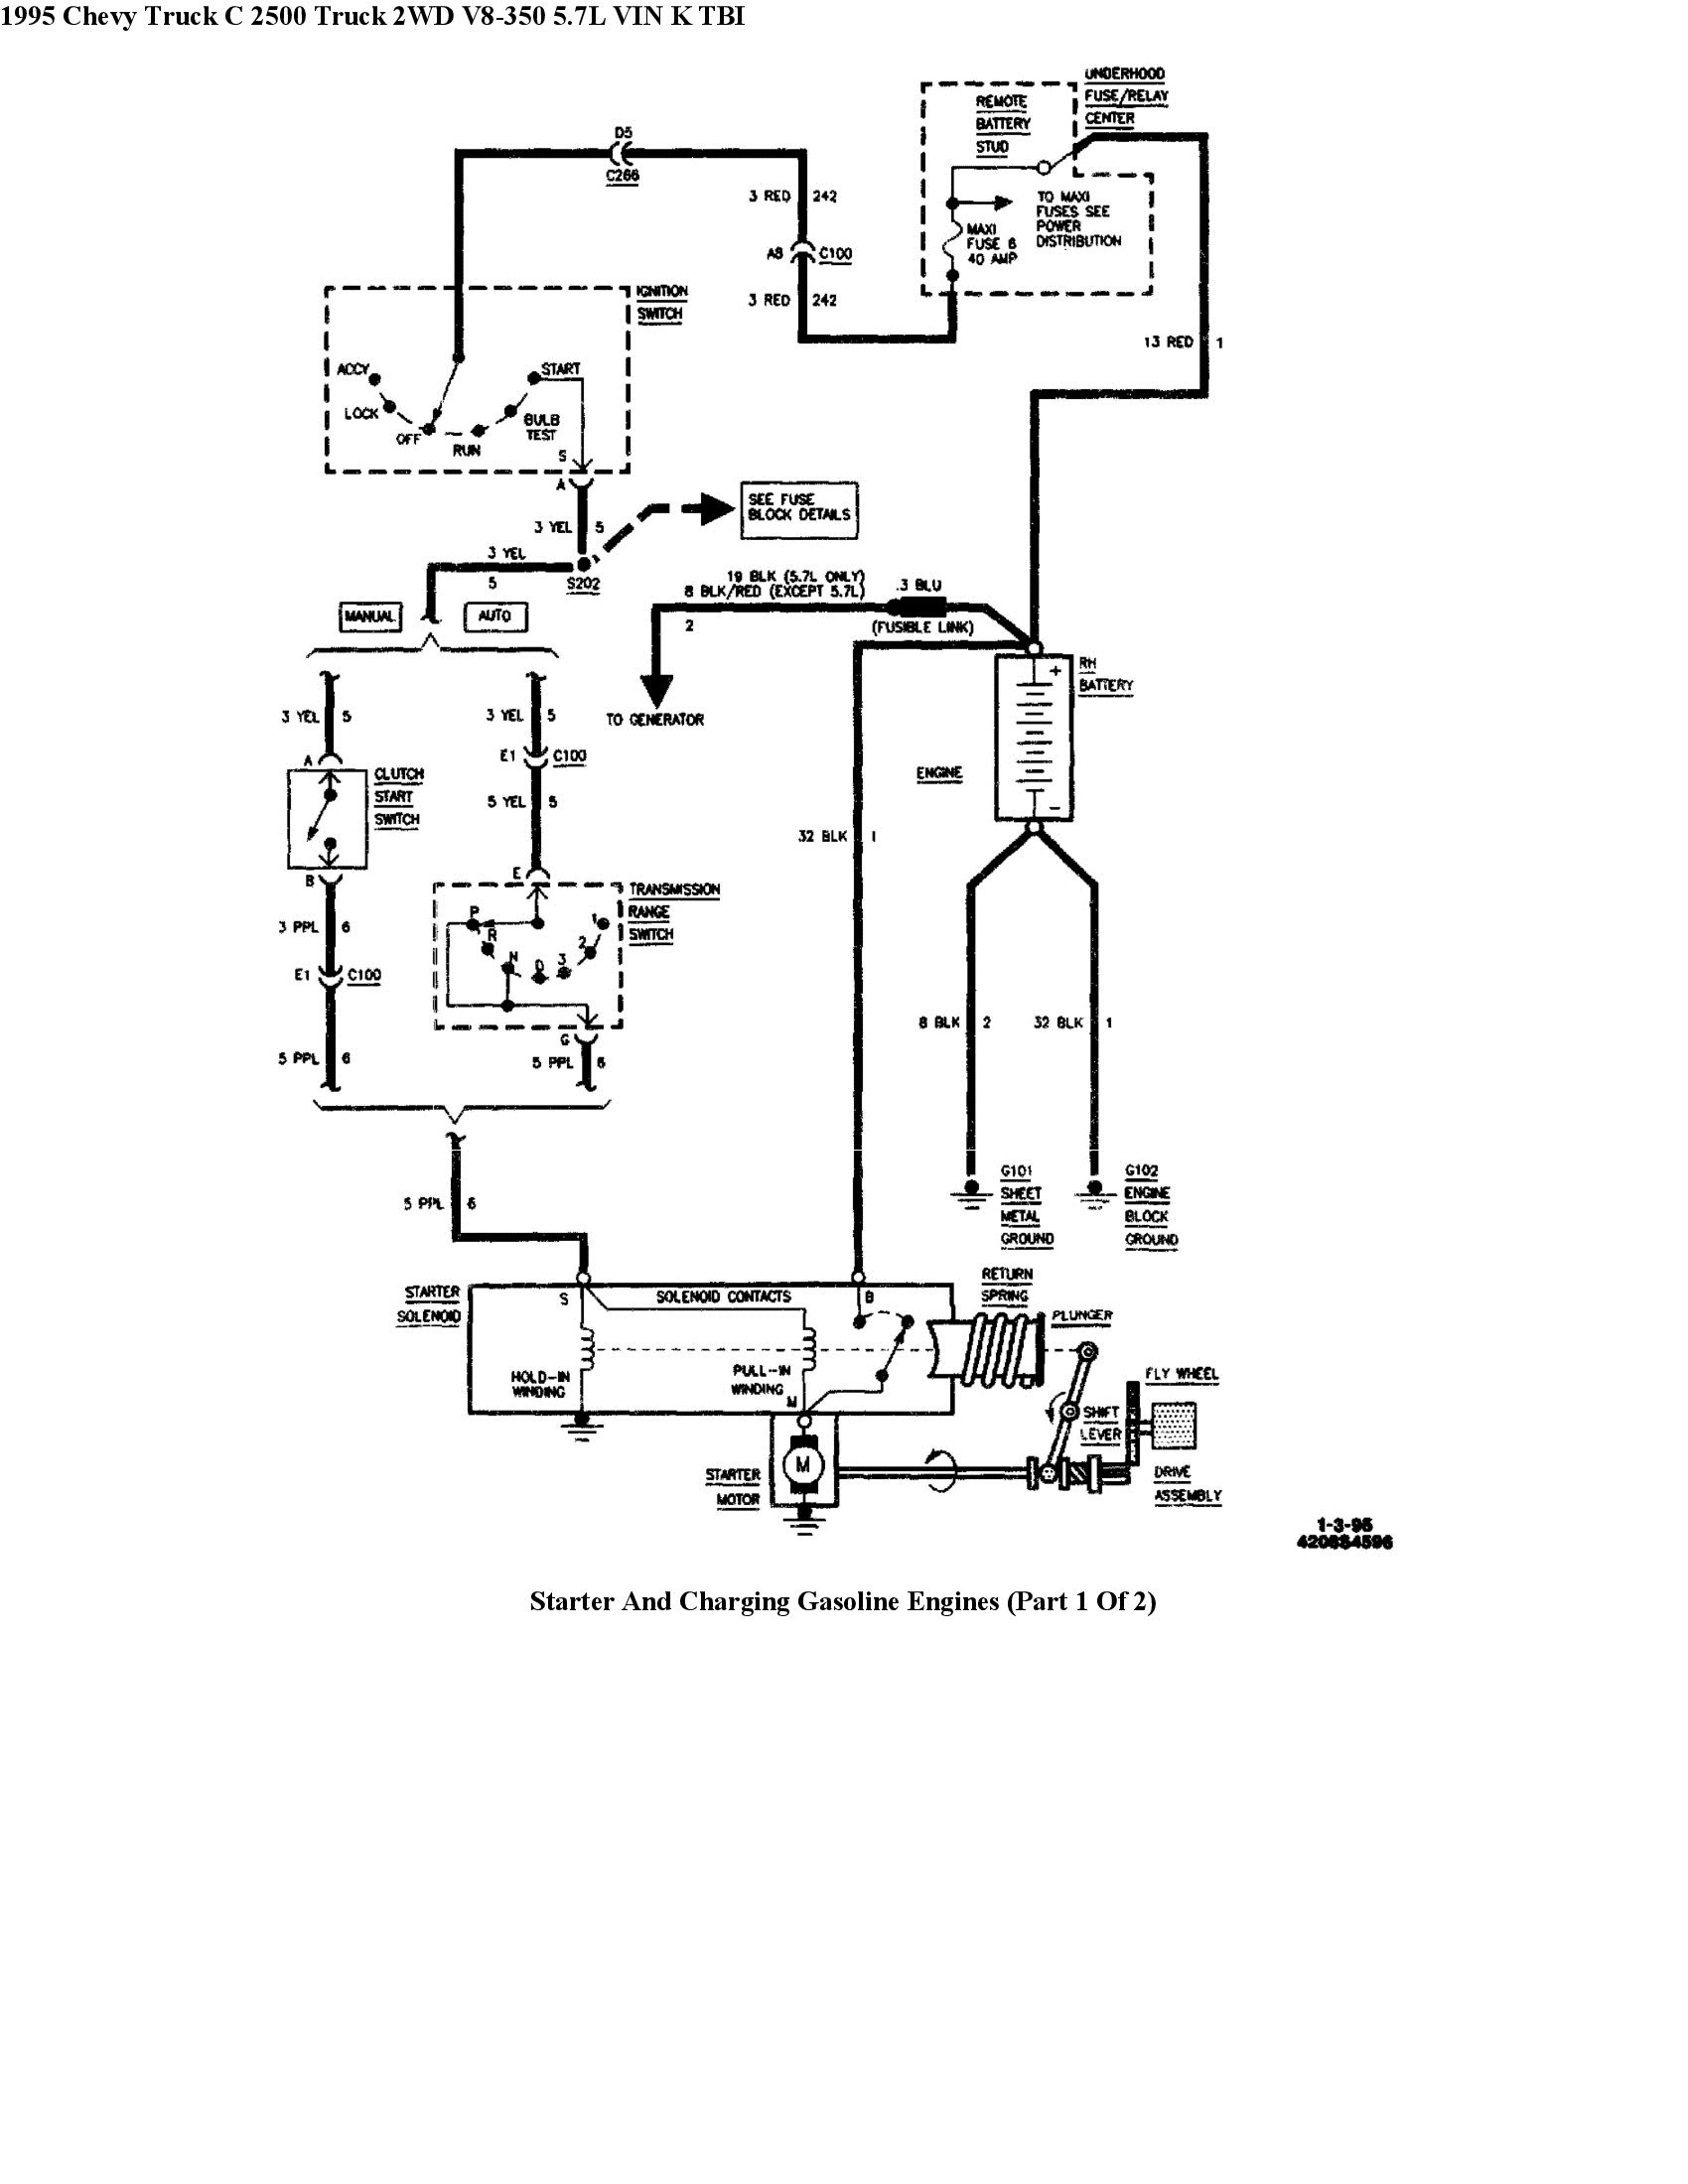 Ignition Switch Wiring Diagram 1995 Chevy 2500 Truck